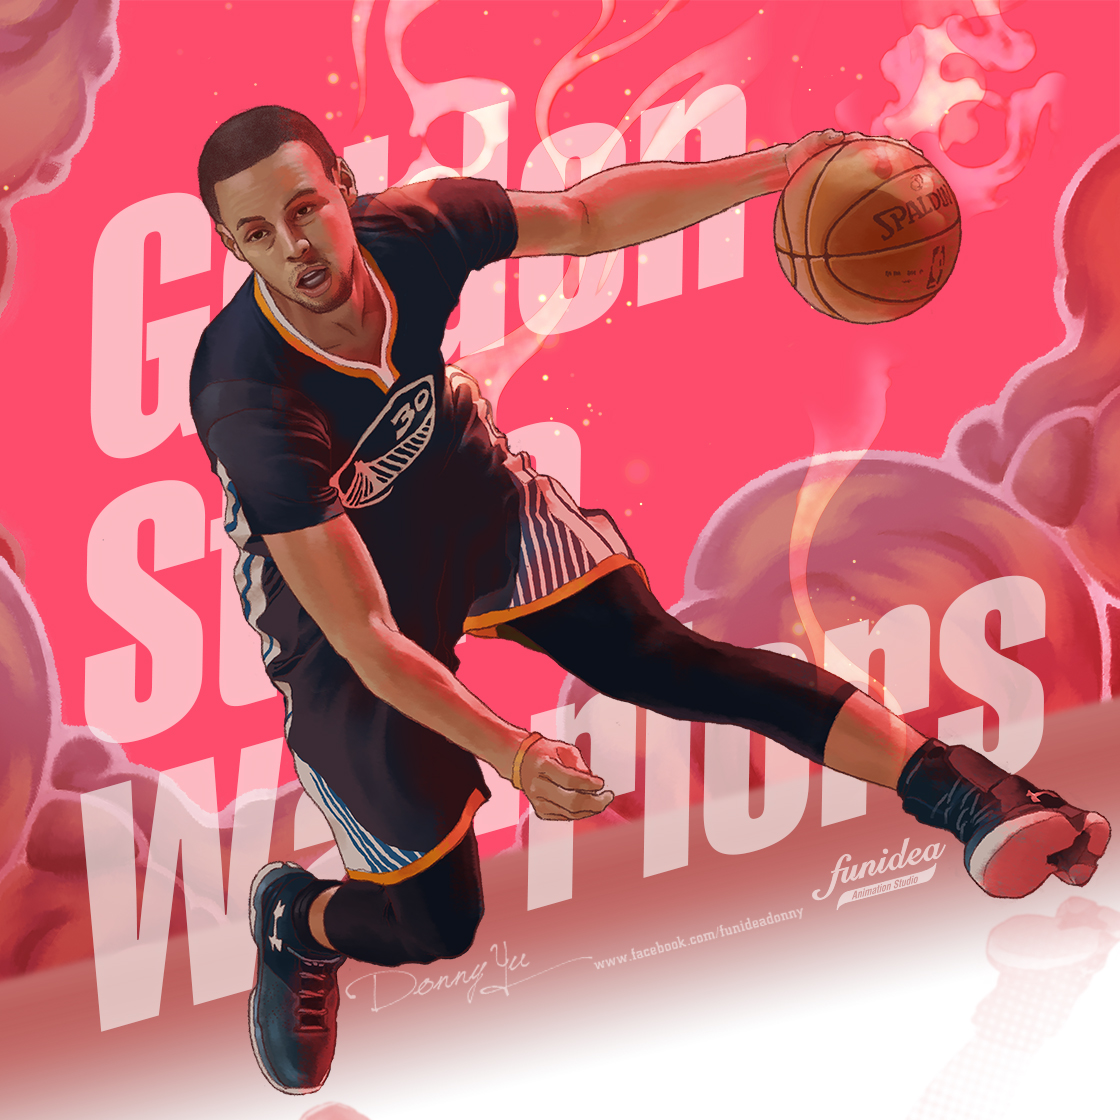 Michael Jordan vs Stephen Curry Illustration